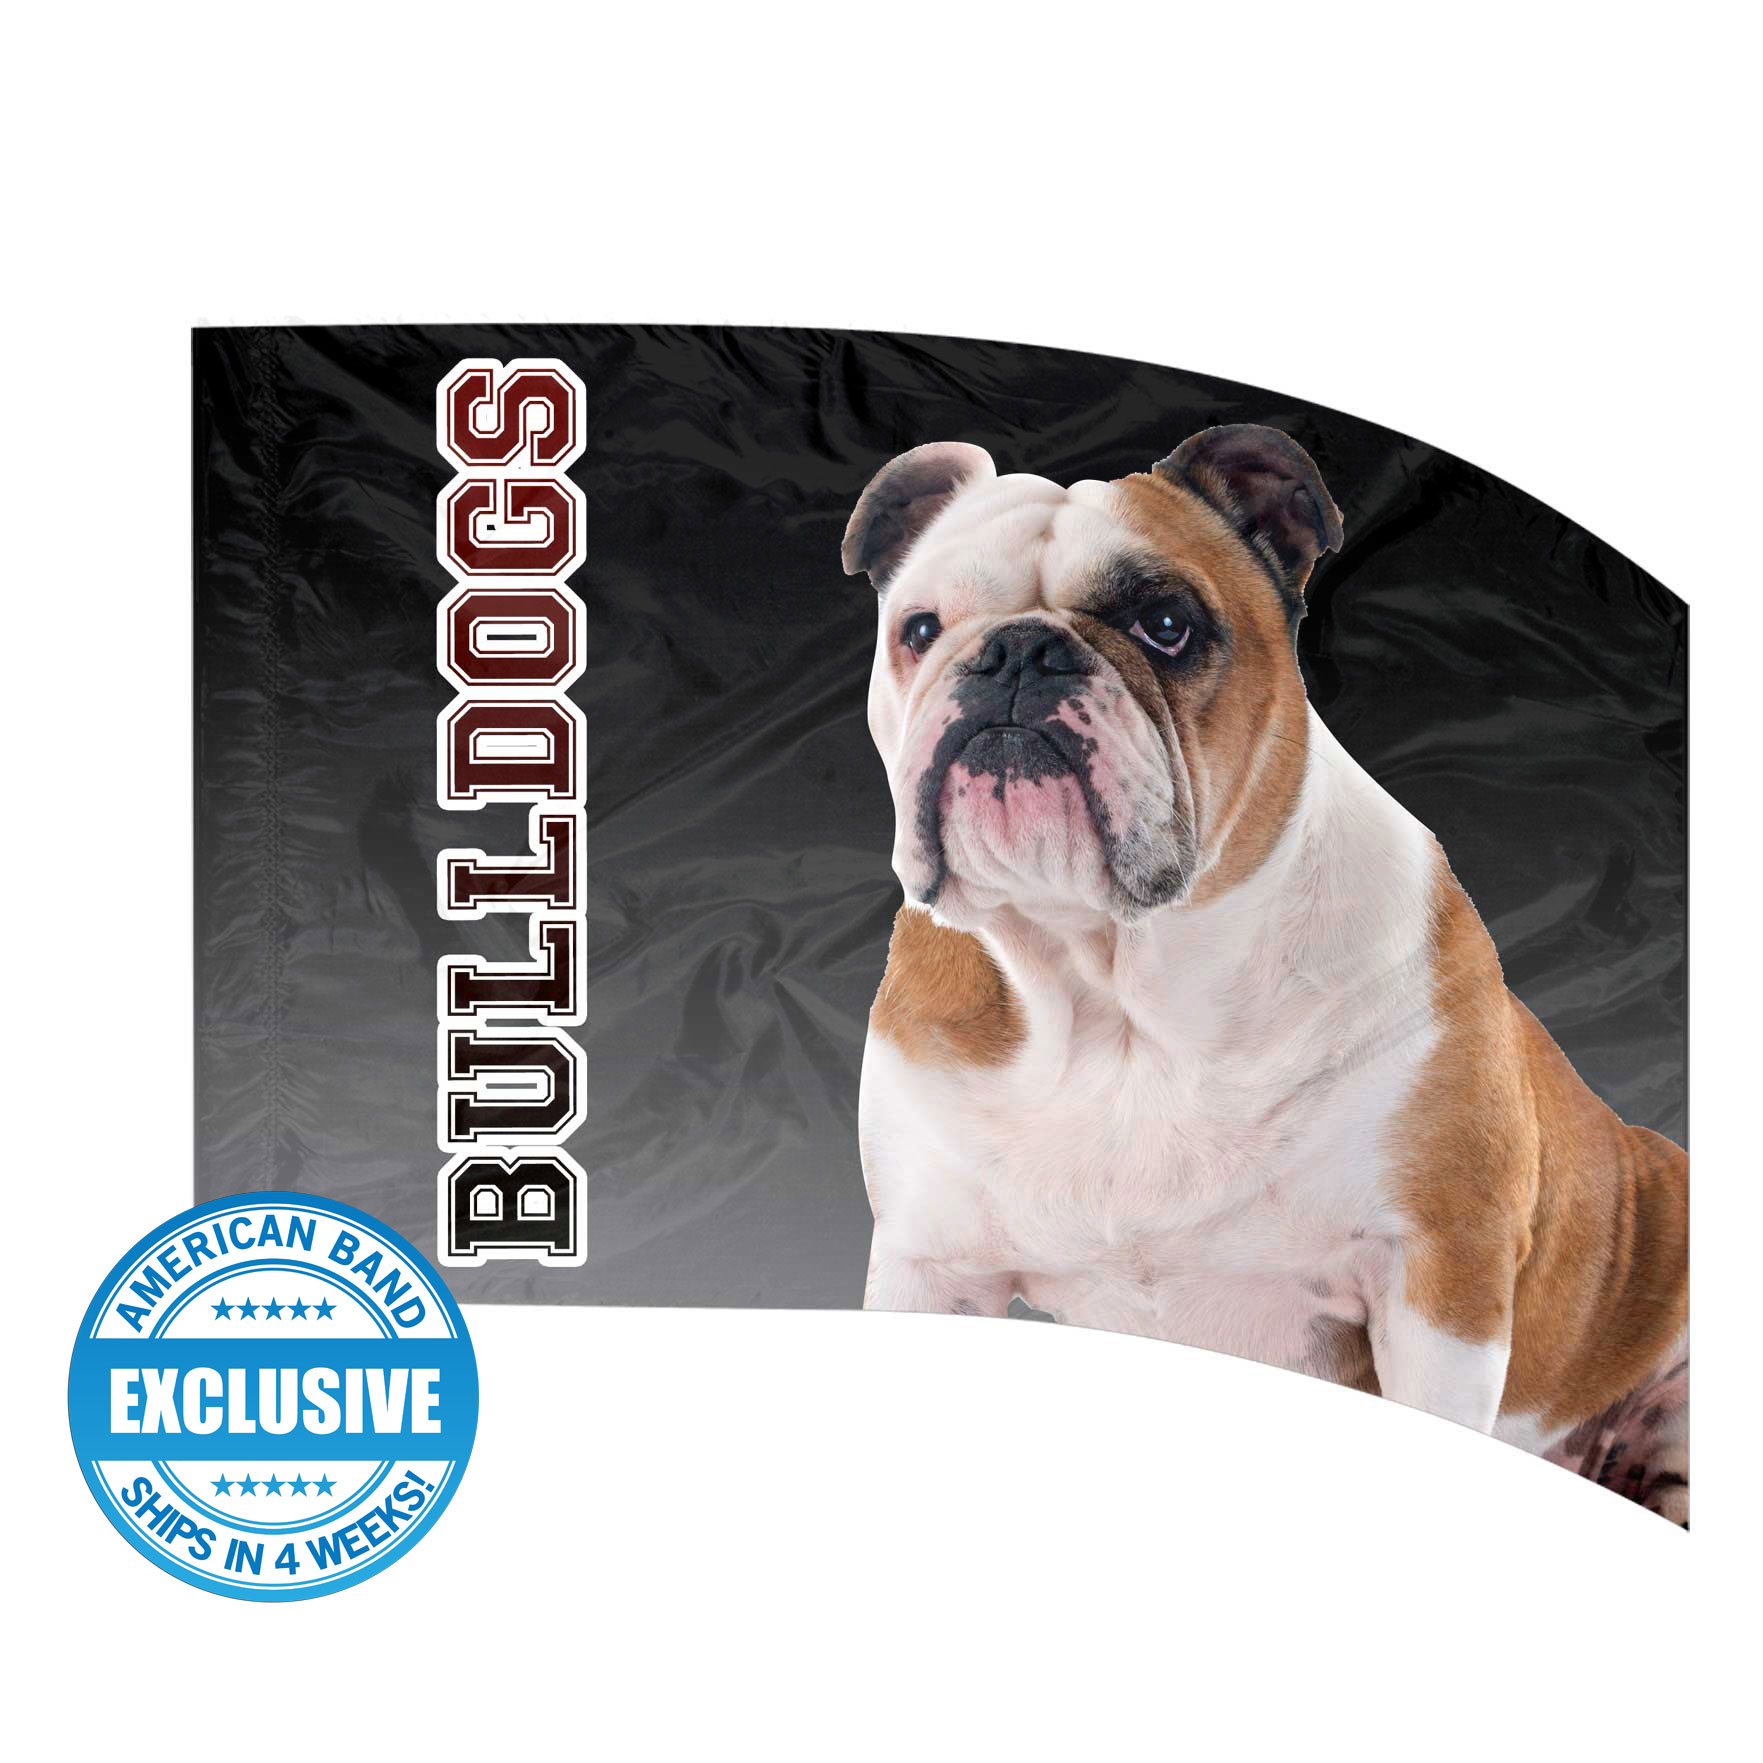 Made-to-Order Digital Mascot Flags - Bulldog